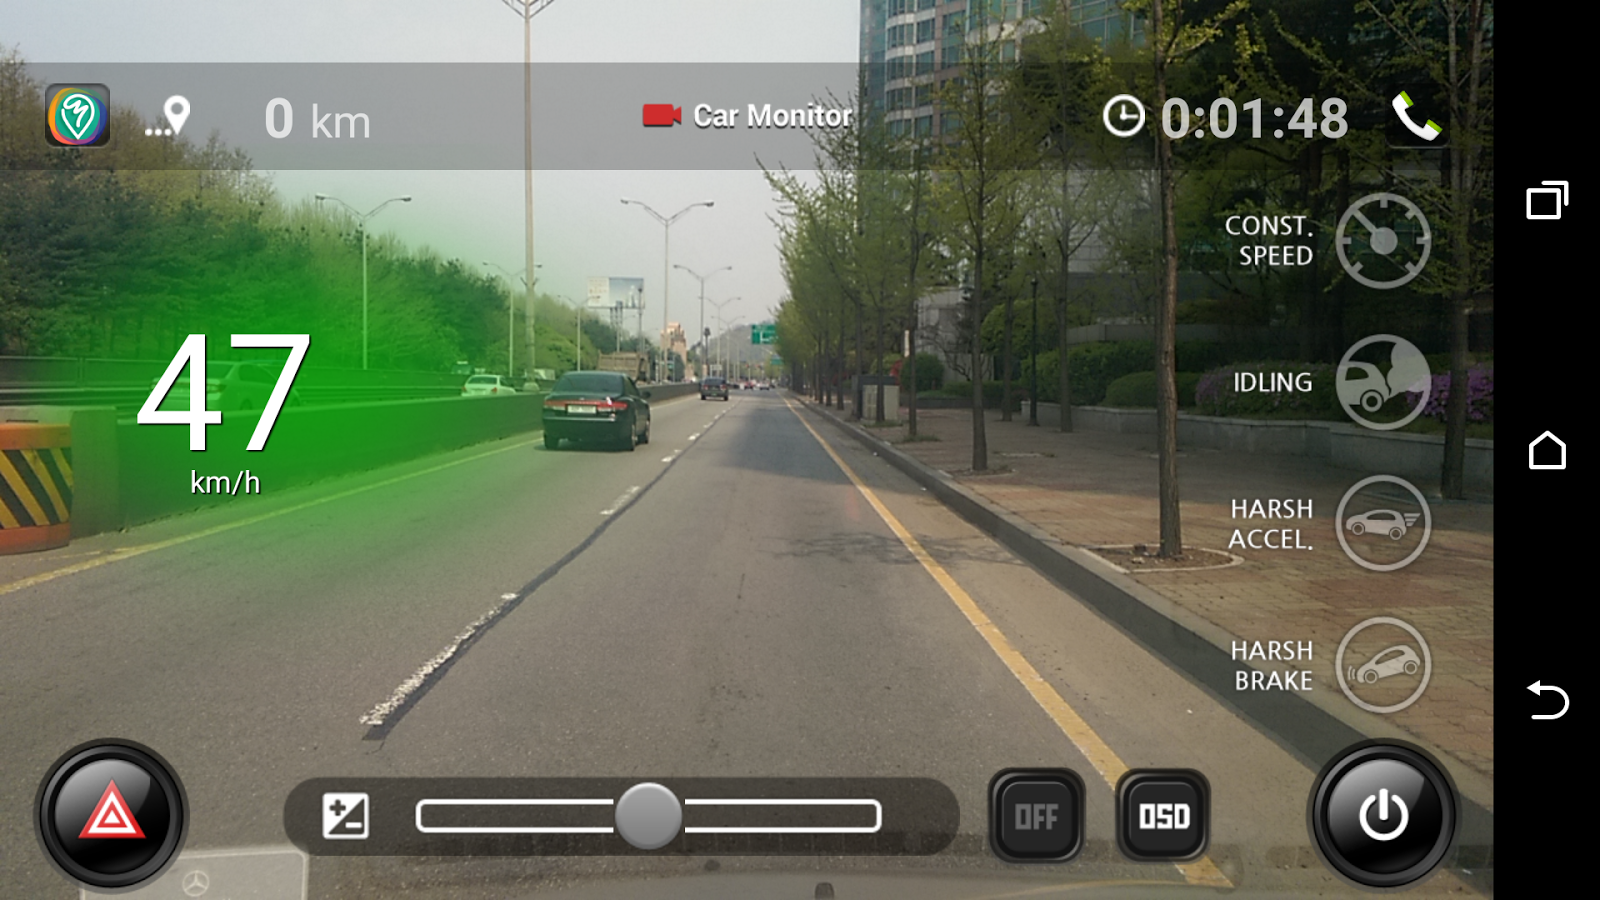 CaroO Pro (Dashcam & OBD) Screenshot 2